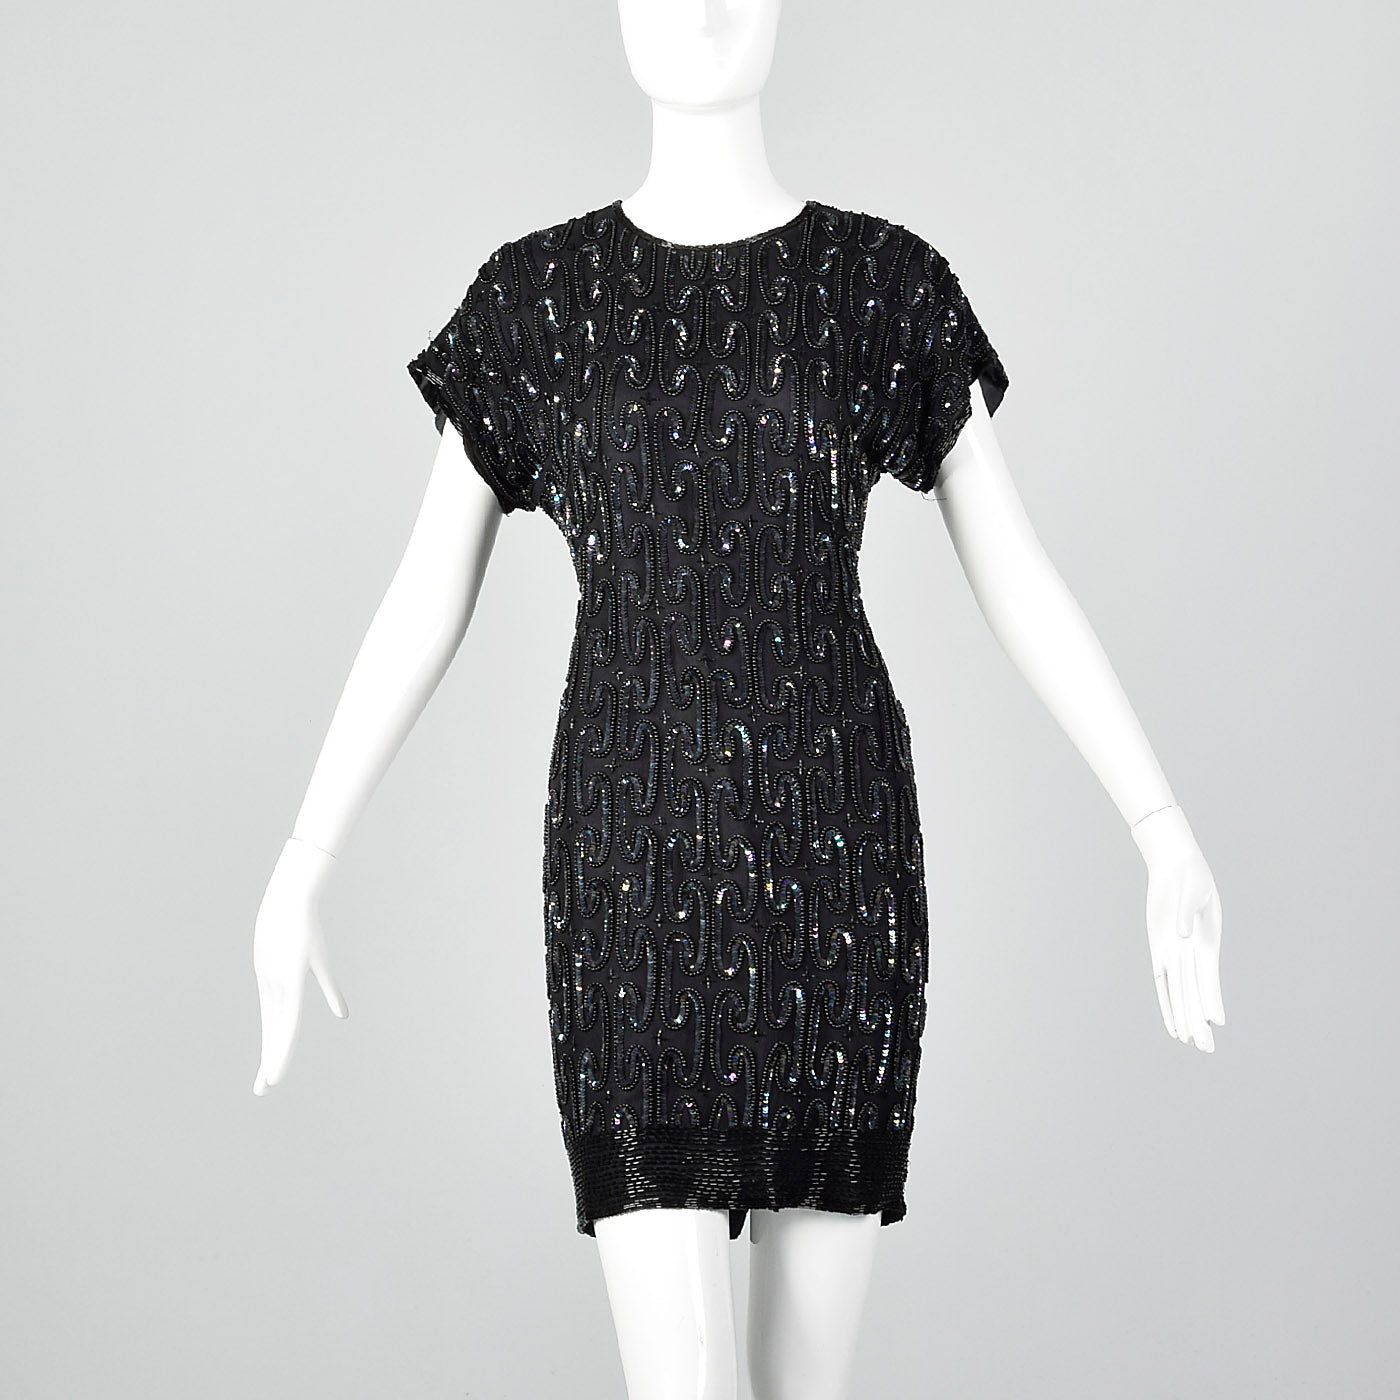 1990s Black Beaded Cocktail Dress